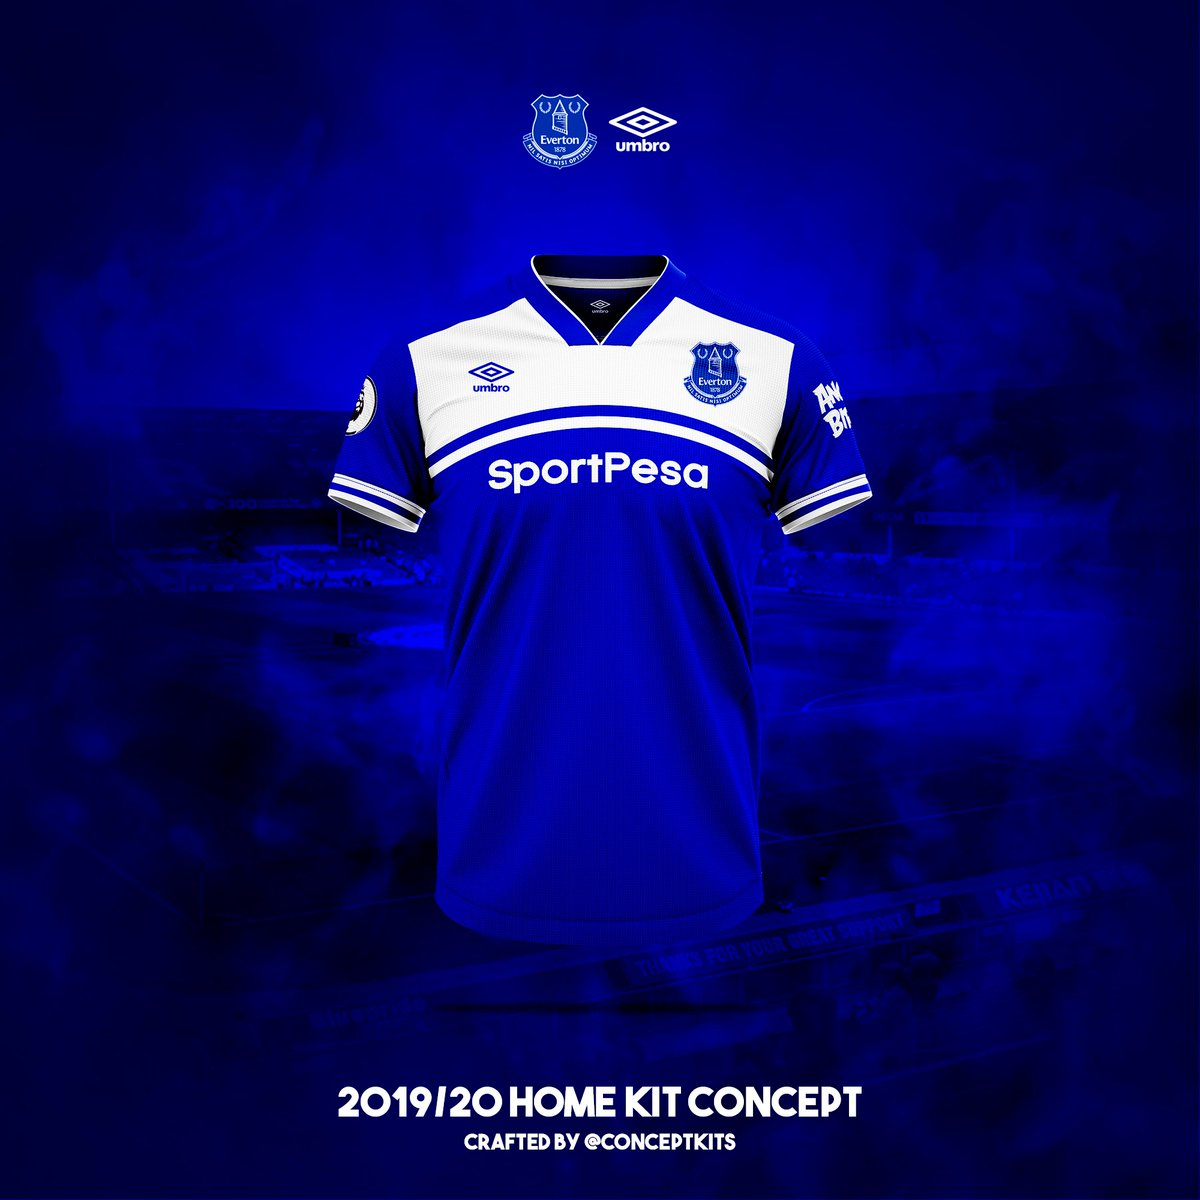 9a65bf3282f Everton Football Club home, away and third kit concepts 2019/20. #EFC  #EvertonFC #Toffees #GoodisonPark #NilSatisNisiOptimum #everton #umbro ...